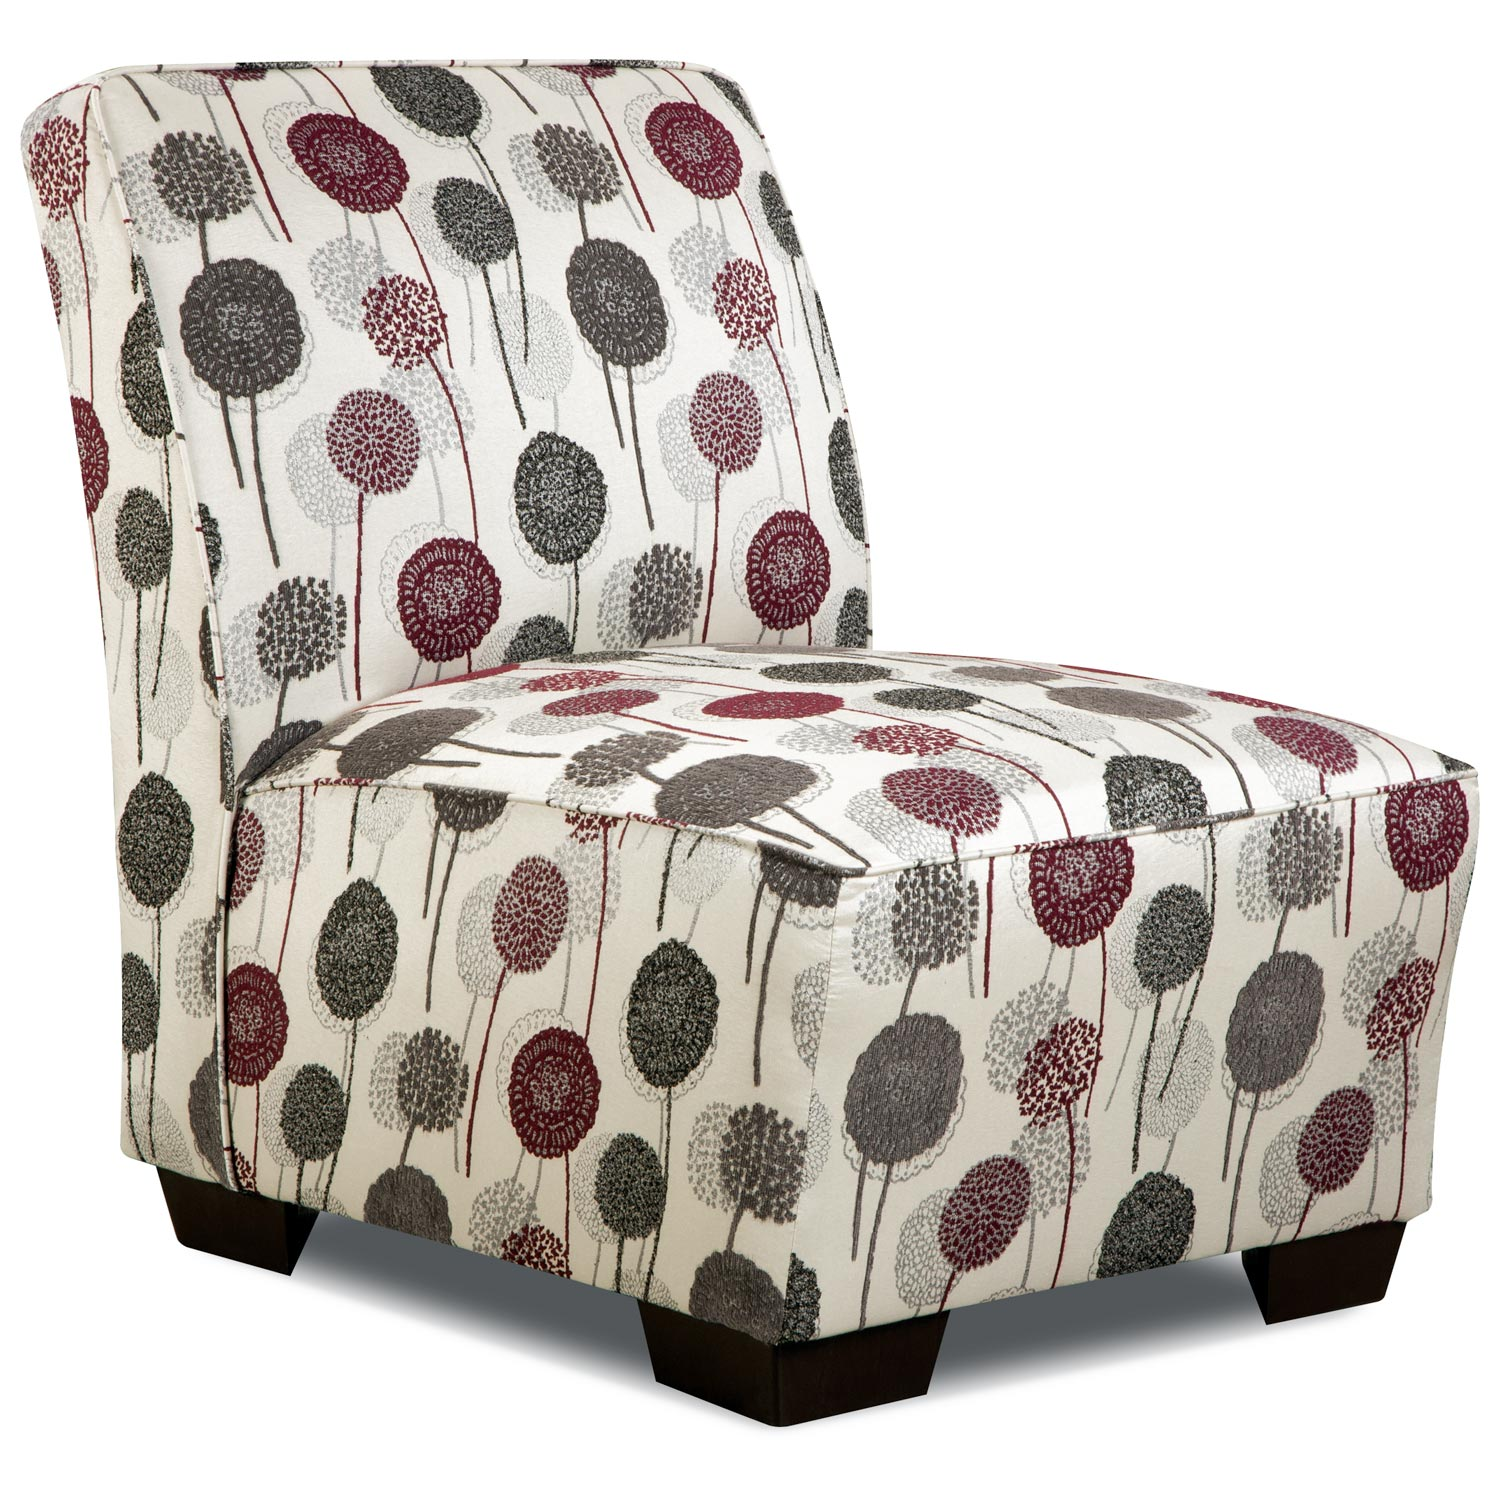 Dandelion Patterned Armless Chair - Wildrose Raspberry Fabric